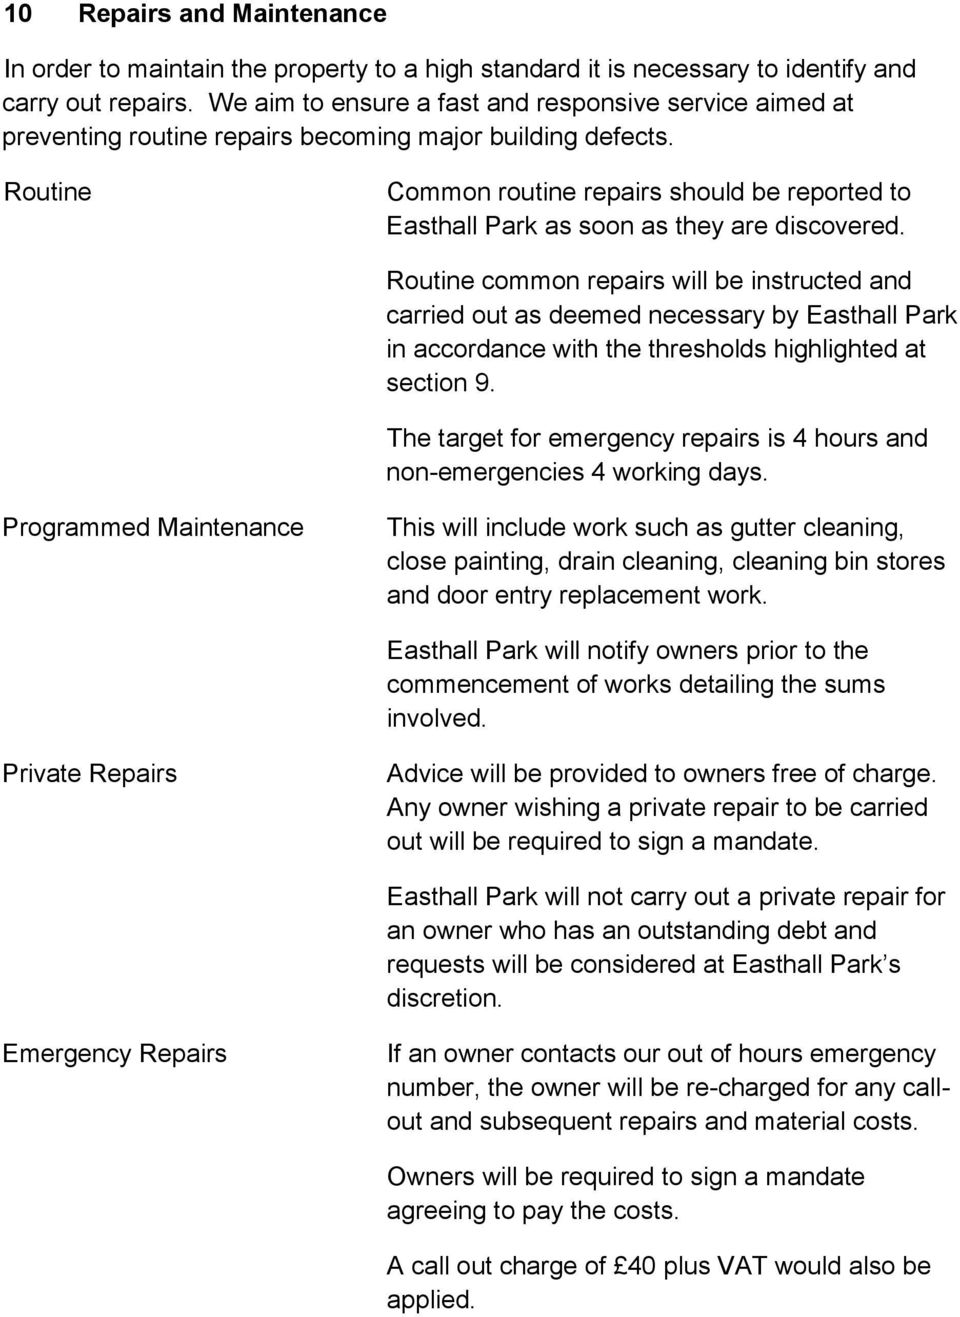 Routine Common routine repairs should be reported to Easthall Park as soon as they are discovered.